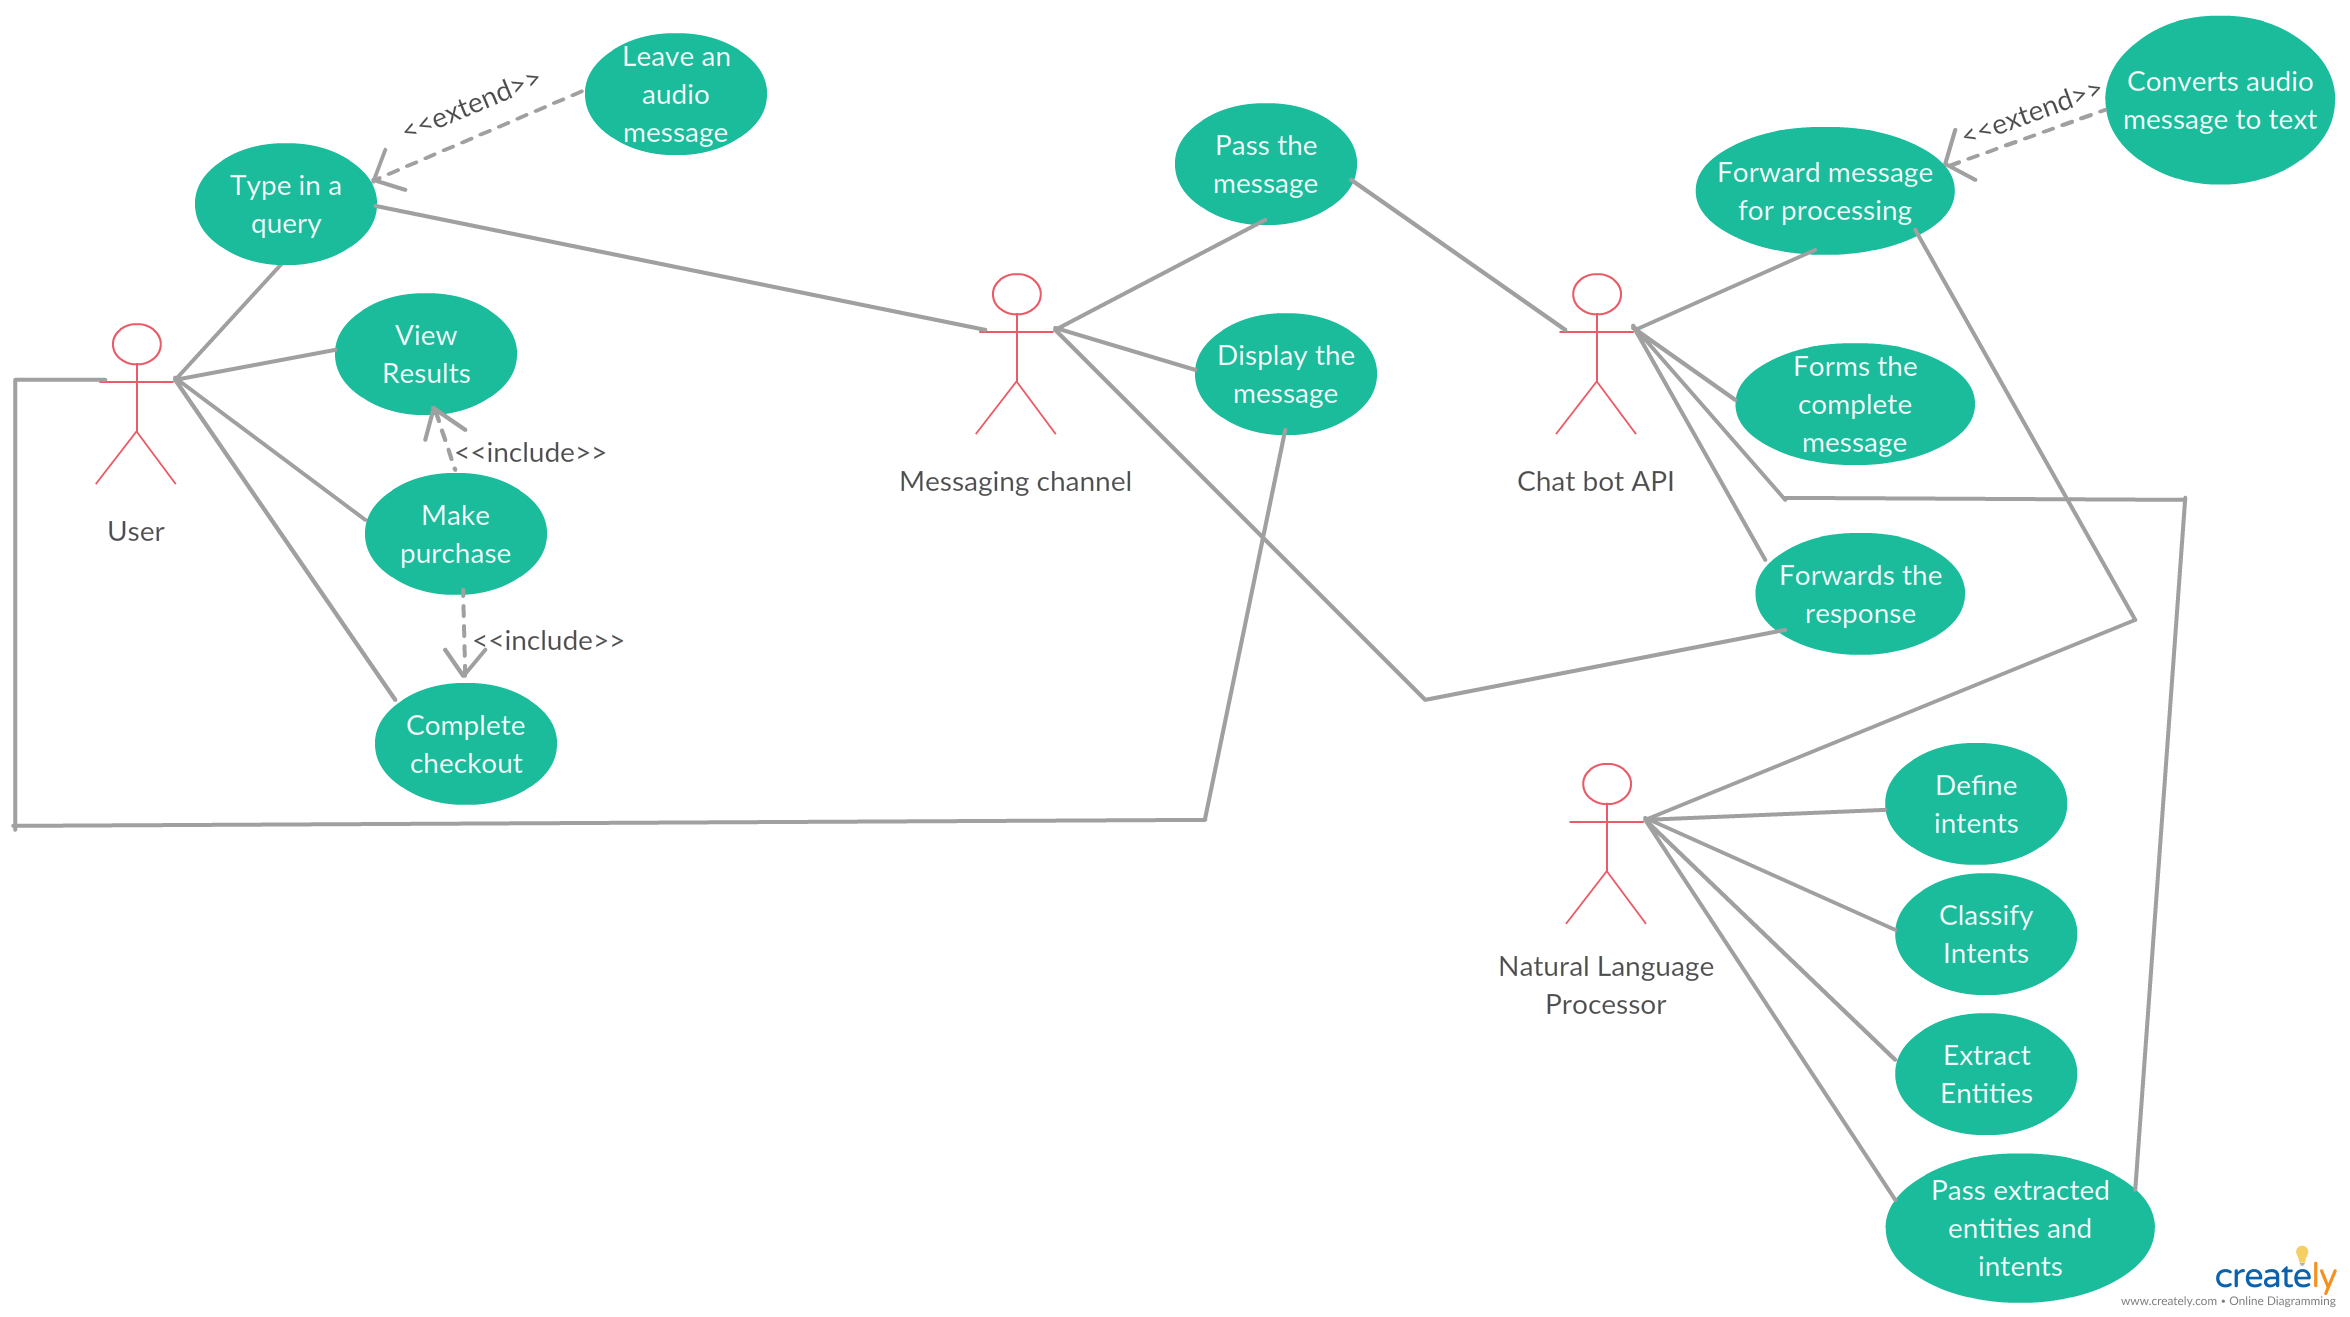 medium resolution of chatbot use case diagram use case diagram for chatbot shows how a message chatbot functions you can use this example diagram to plan your own chatbot